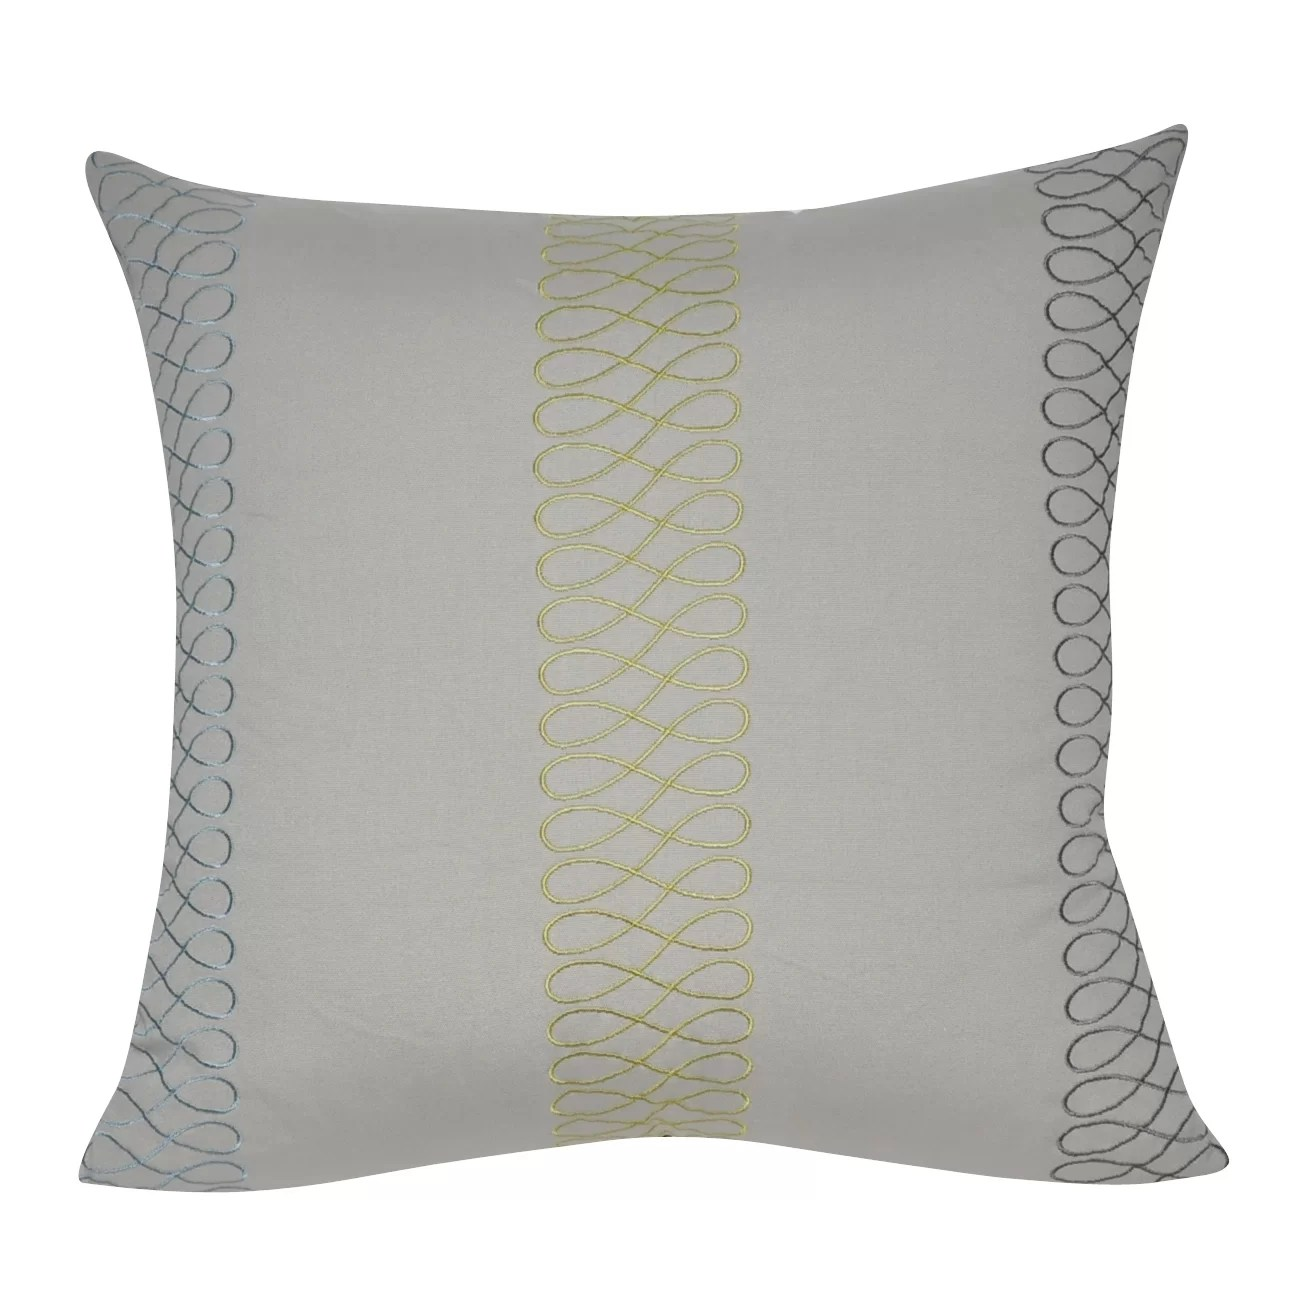 Loom and Mill Stripe Decorative II Throw Pillow  Reviews